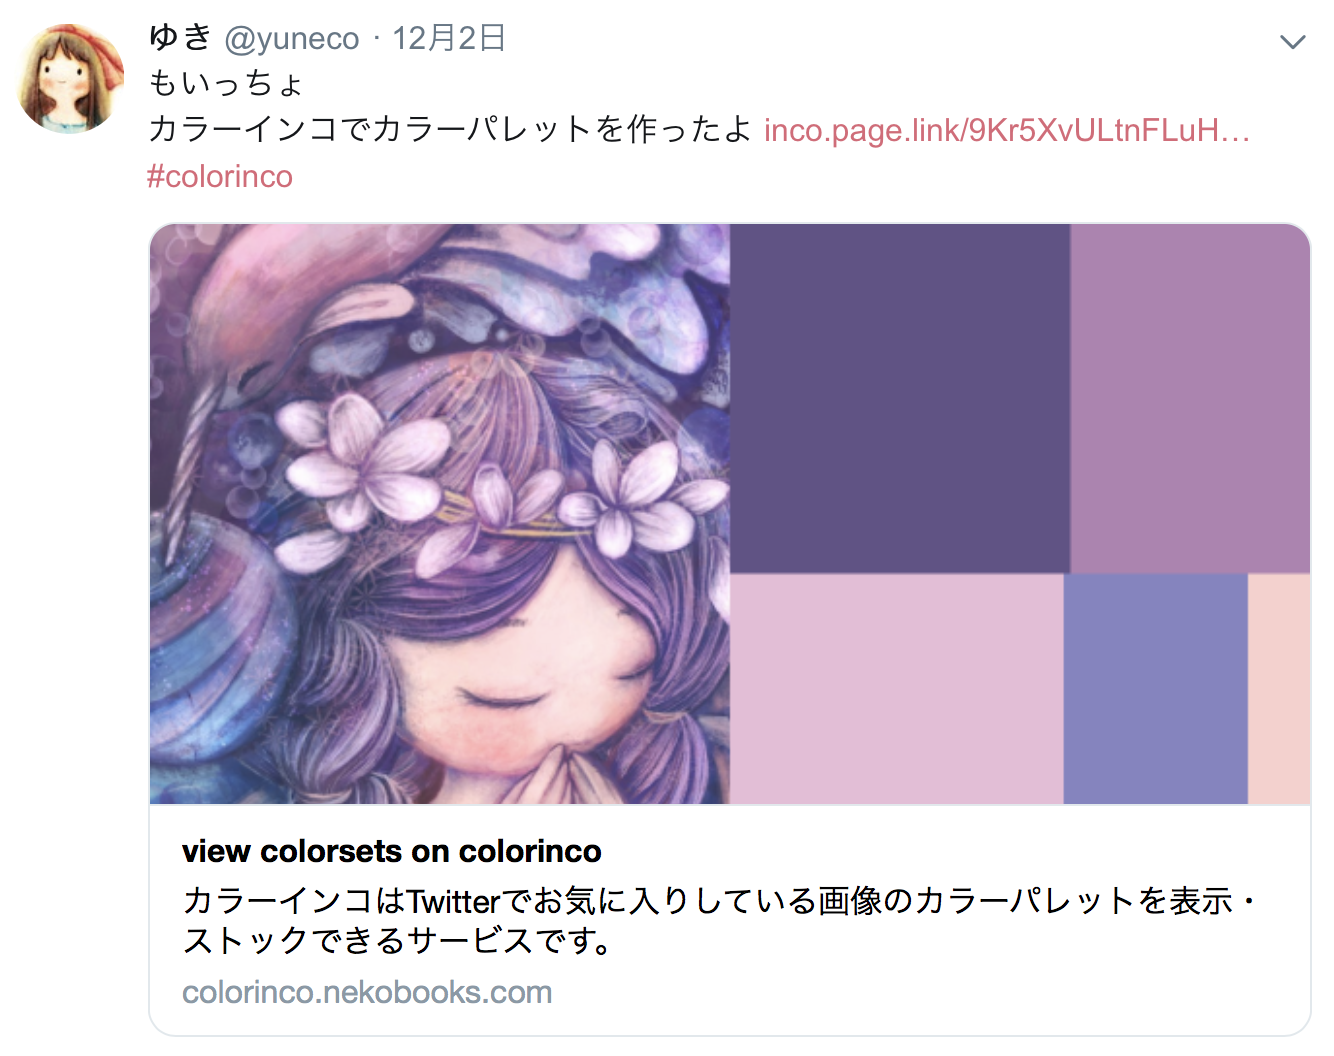 colorinco on twitter